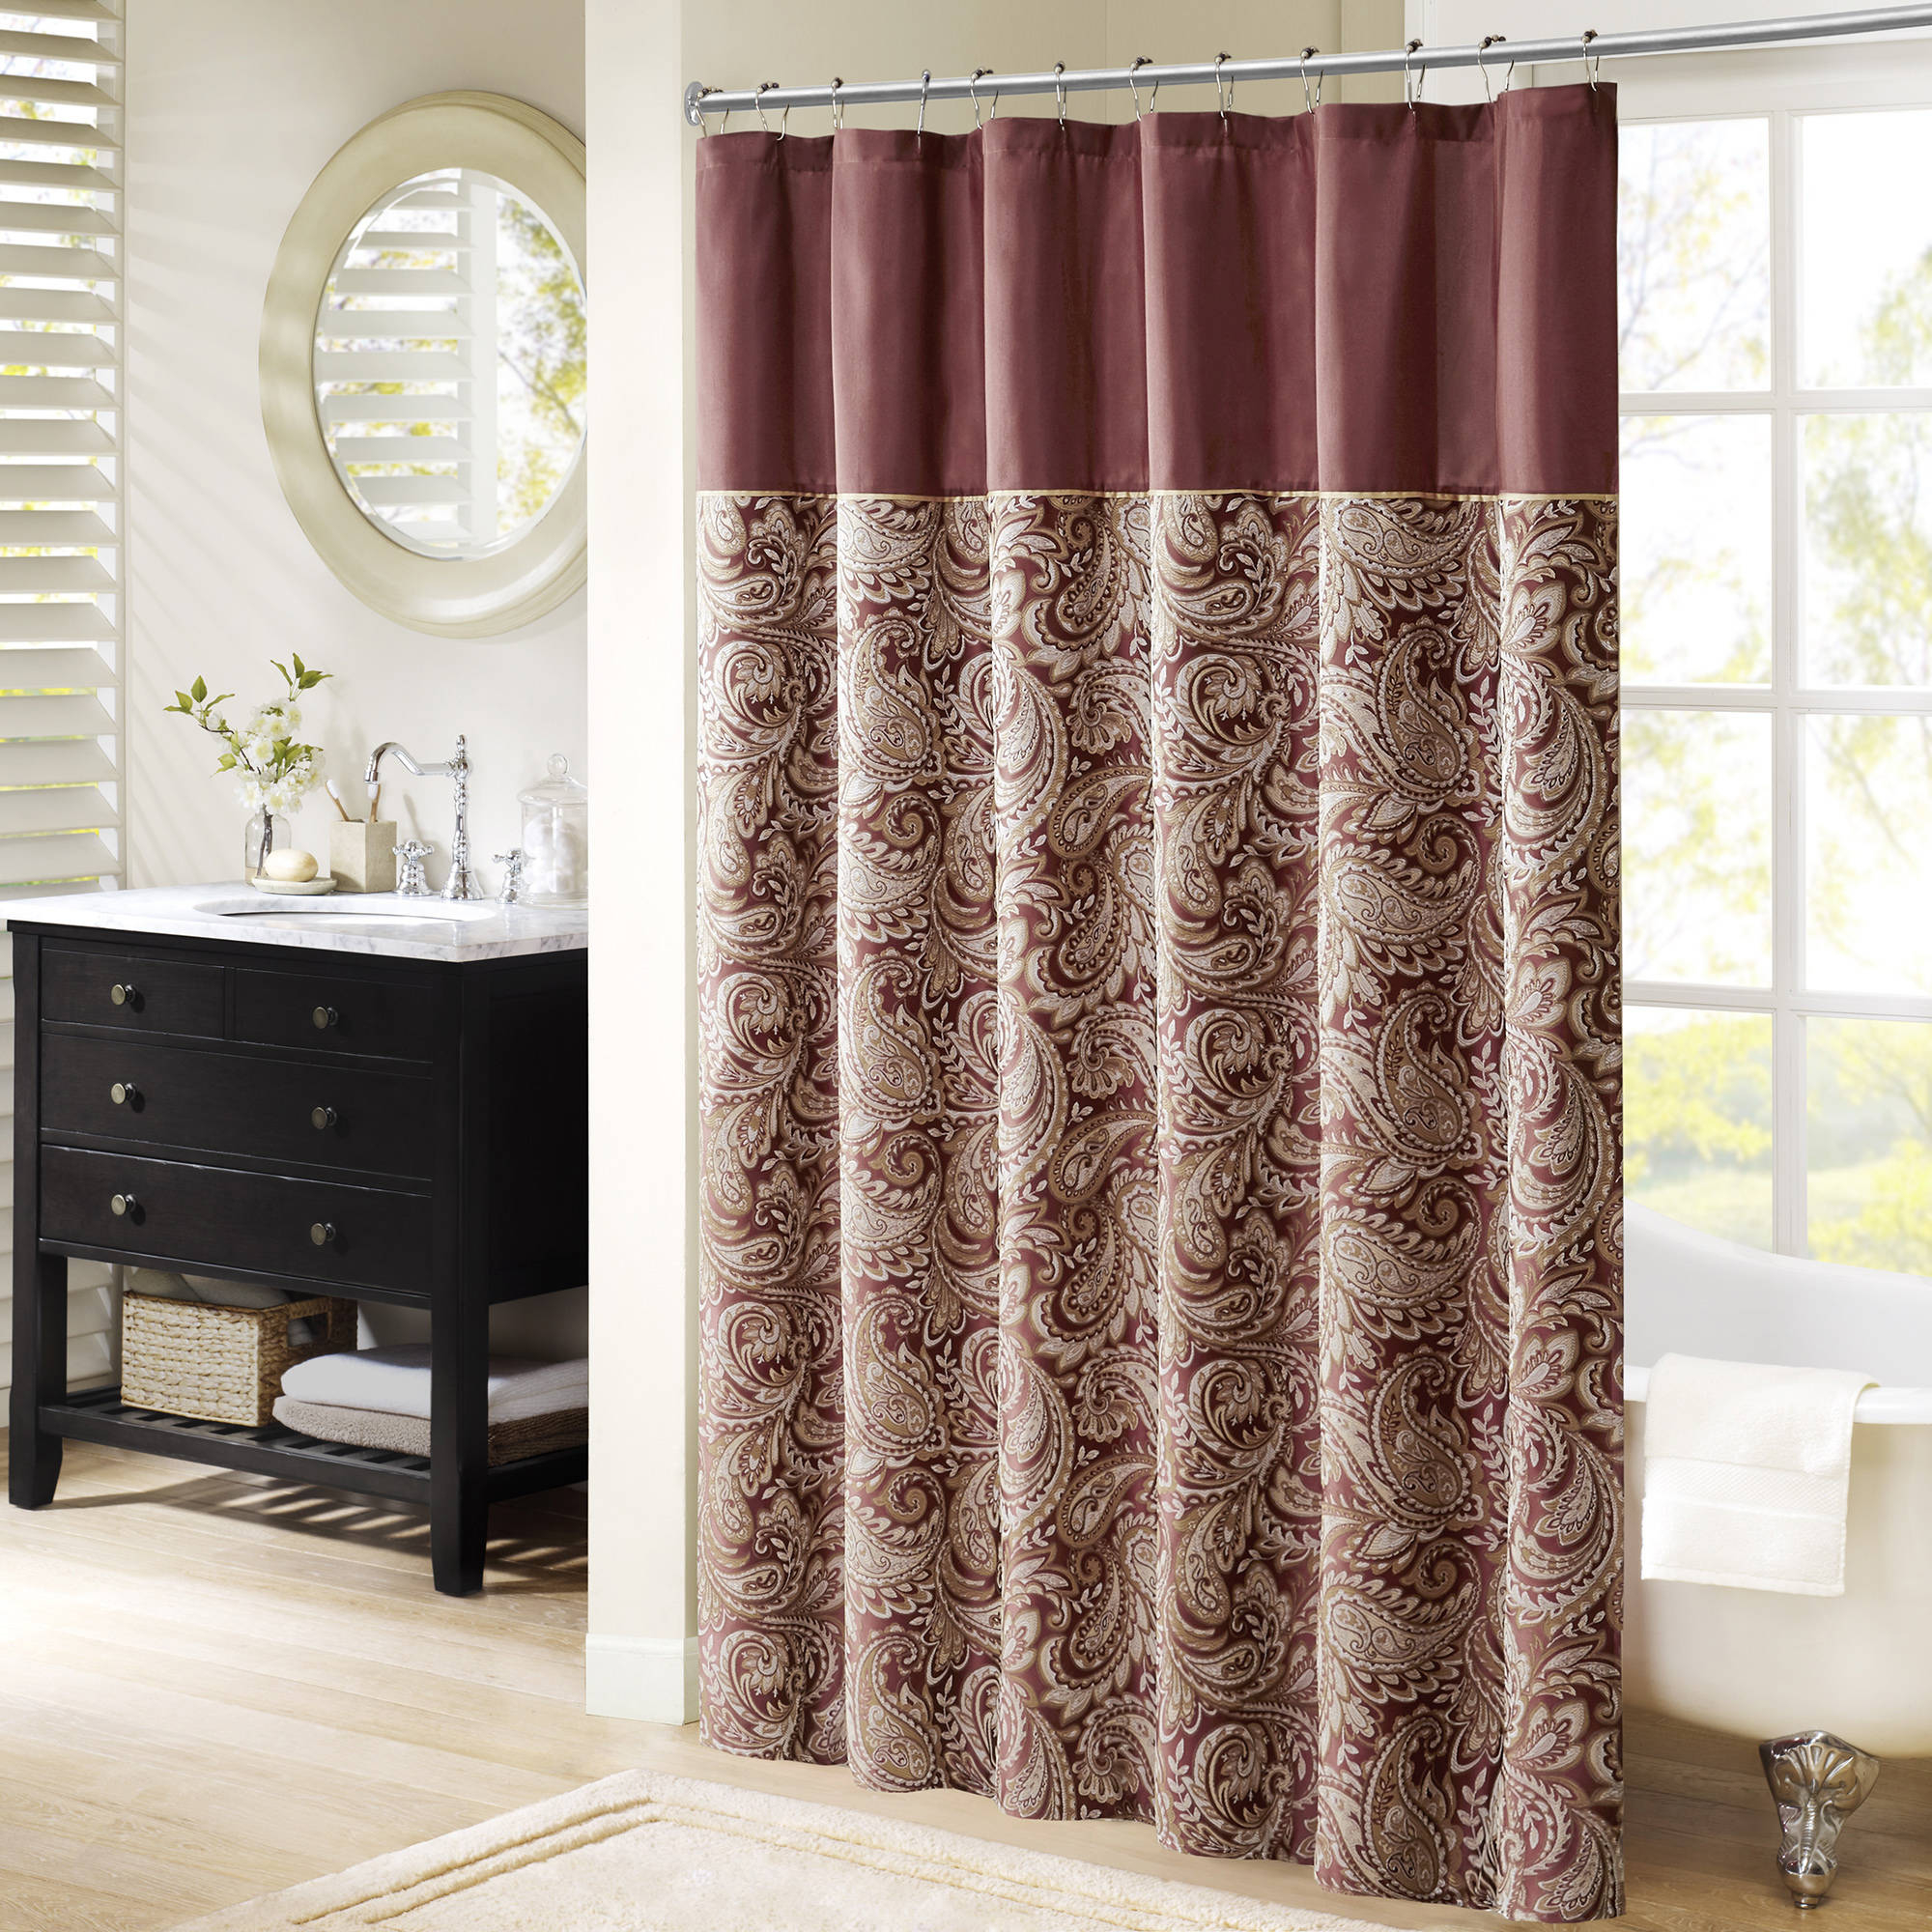 Curtain Wondrous Southwestern Shower Curtain For Mesmerizing Home regarding dimensions 2000 X 2000